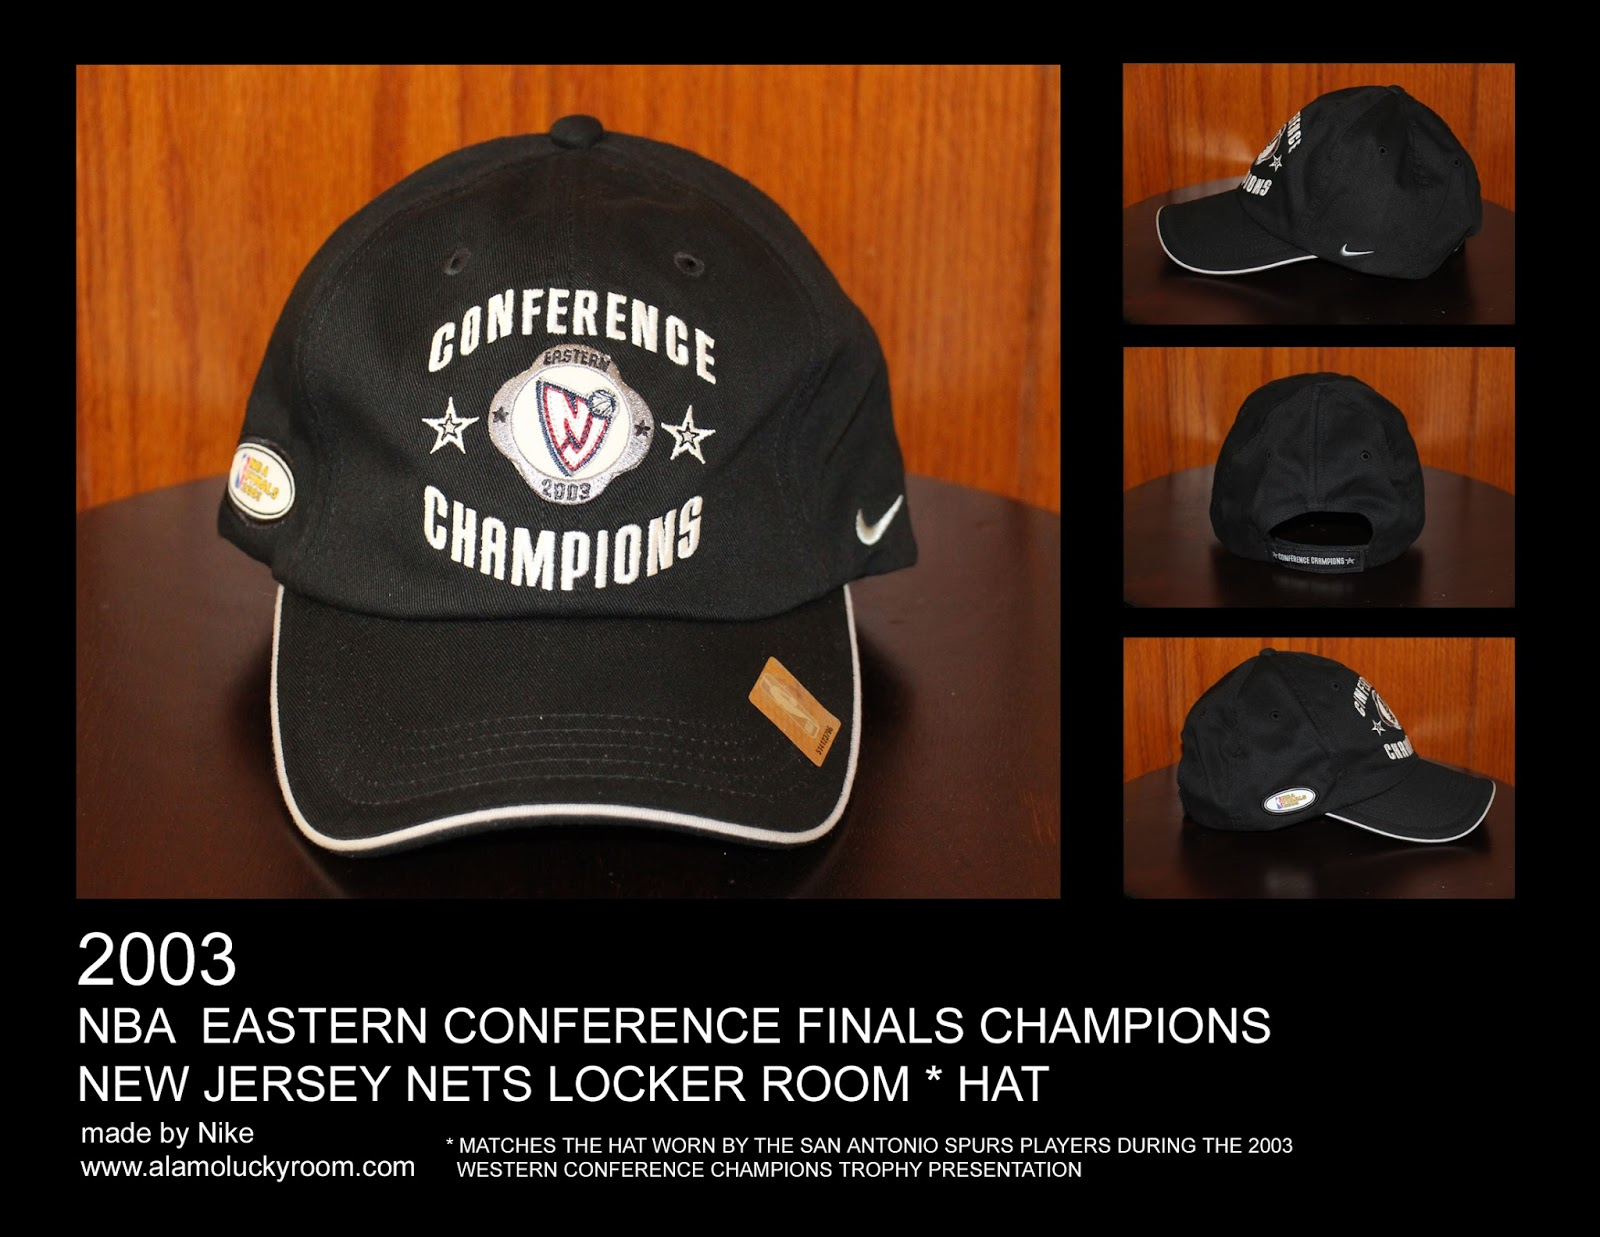 73d42d5694c 2003 New Jersey Nets NBA Eastern Conference Finals Champions Locker Room Hat